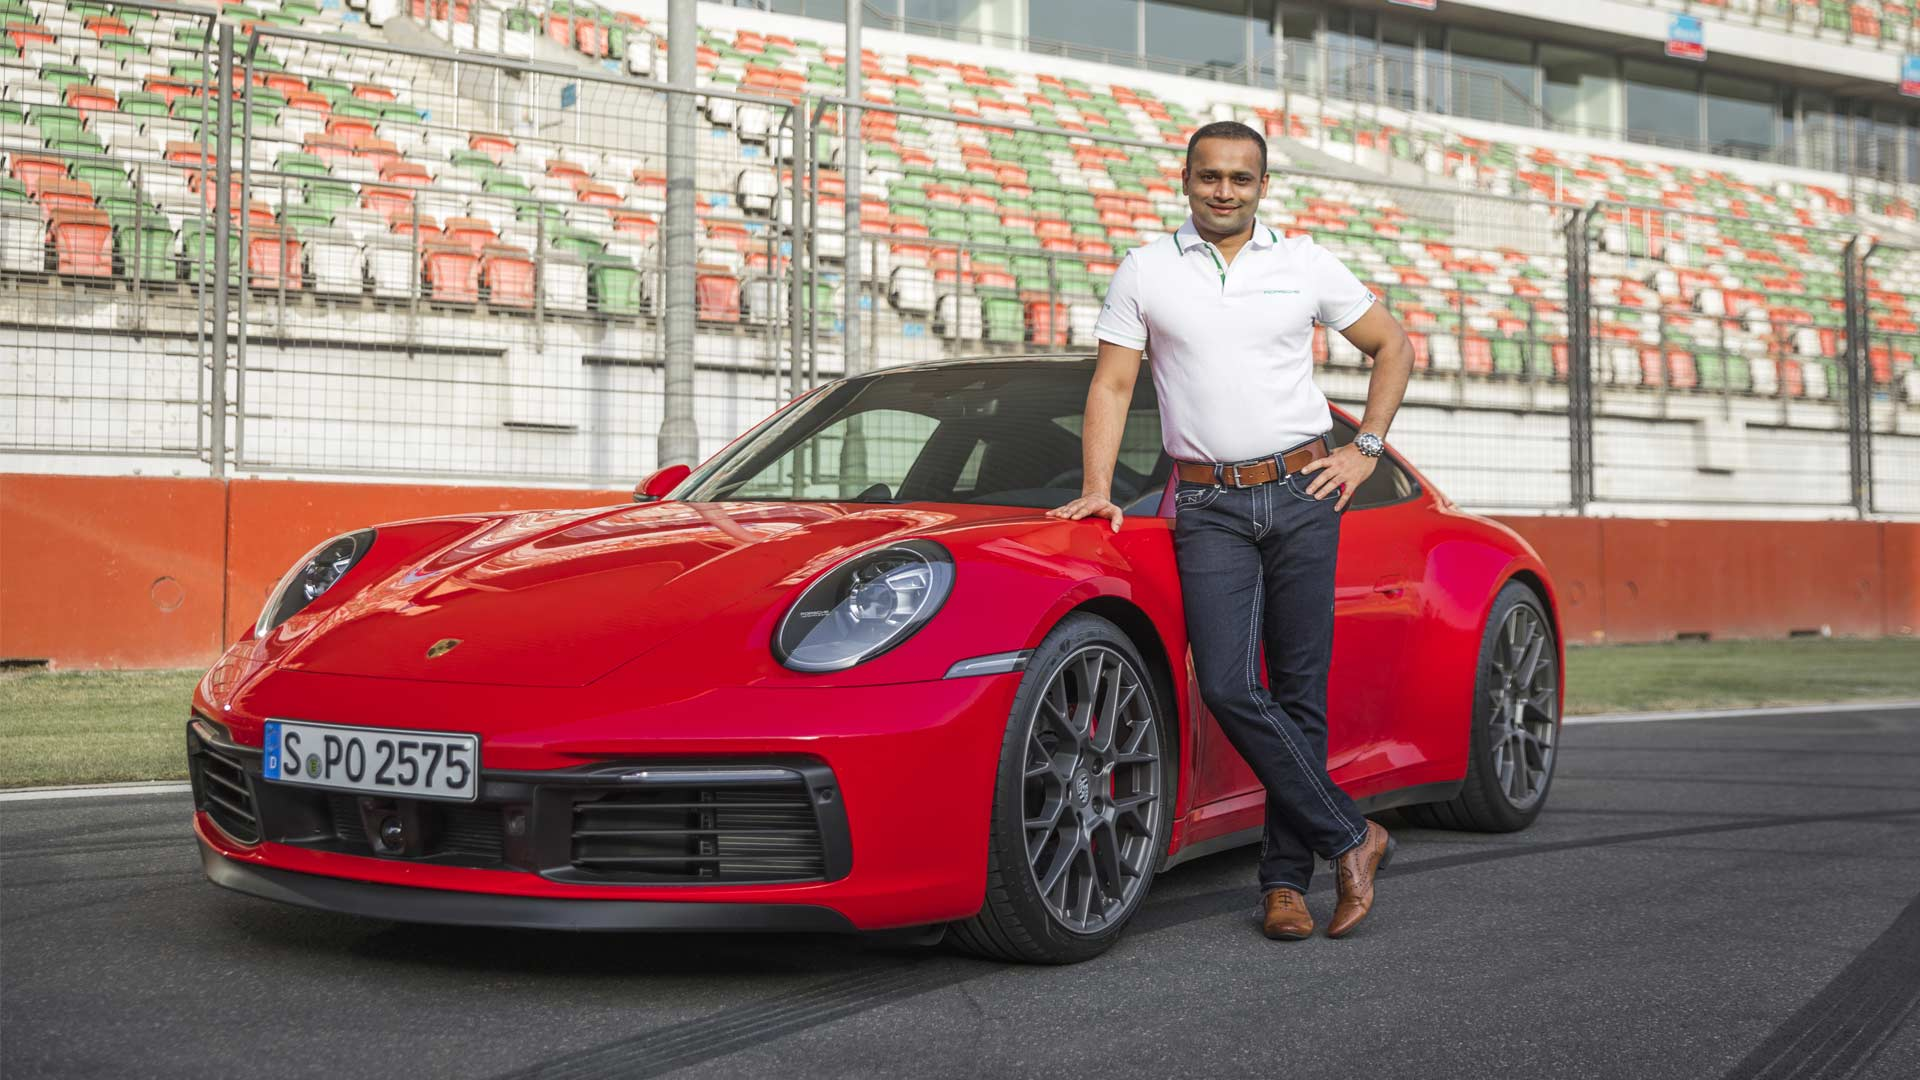 8th-generation-of-the-Porsche-911-India-launch-2019-Buddh-International-Circuit